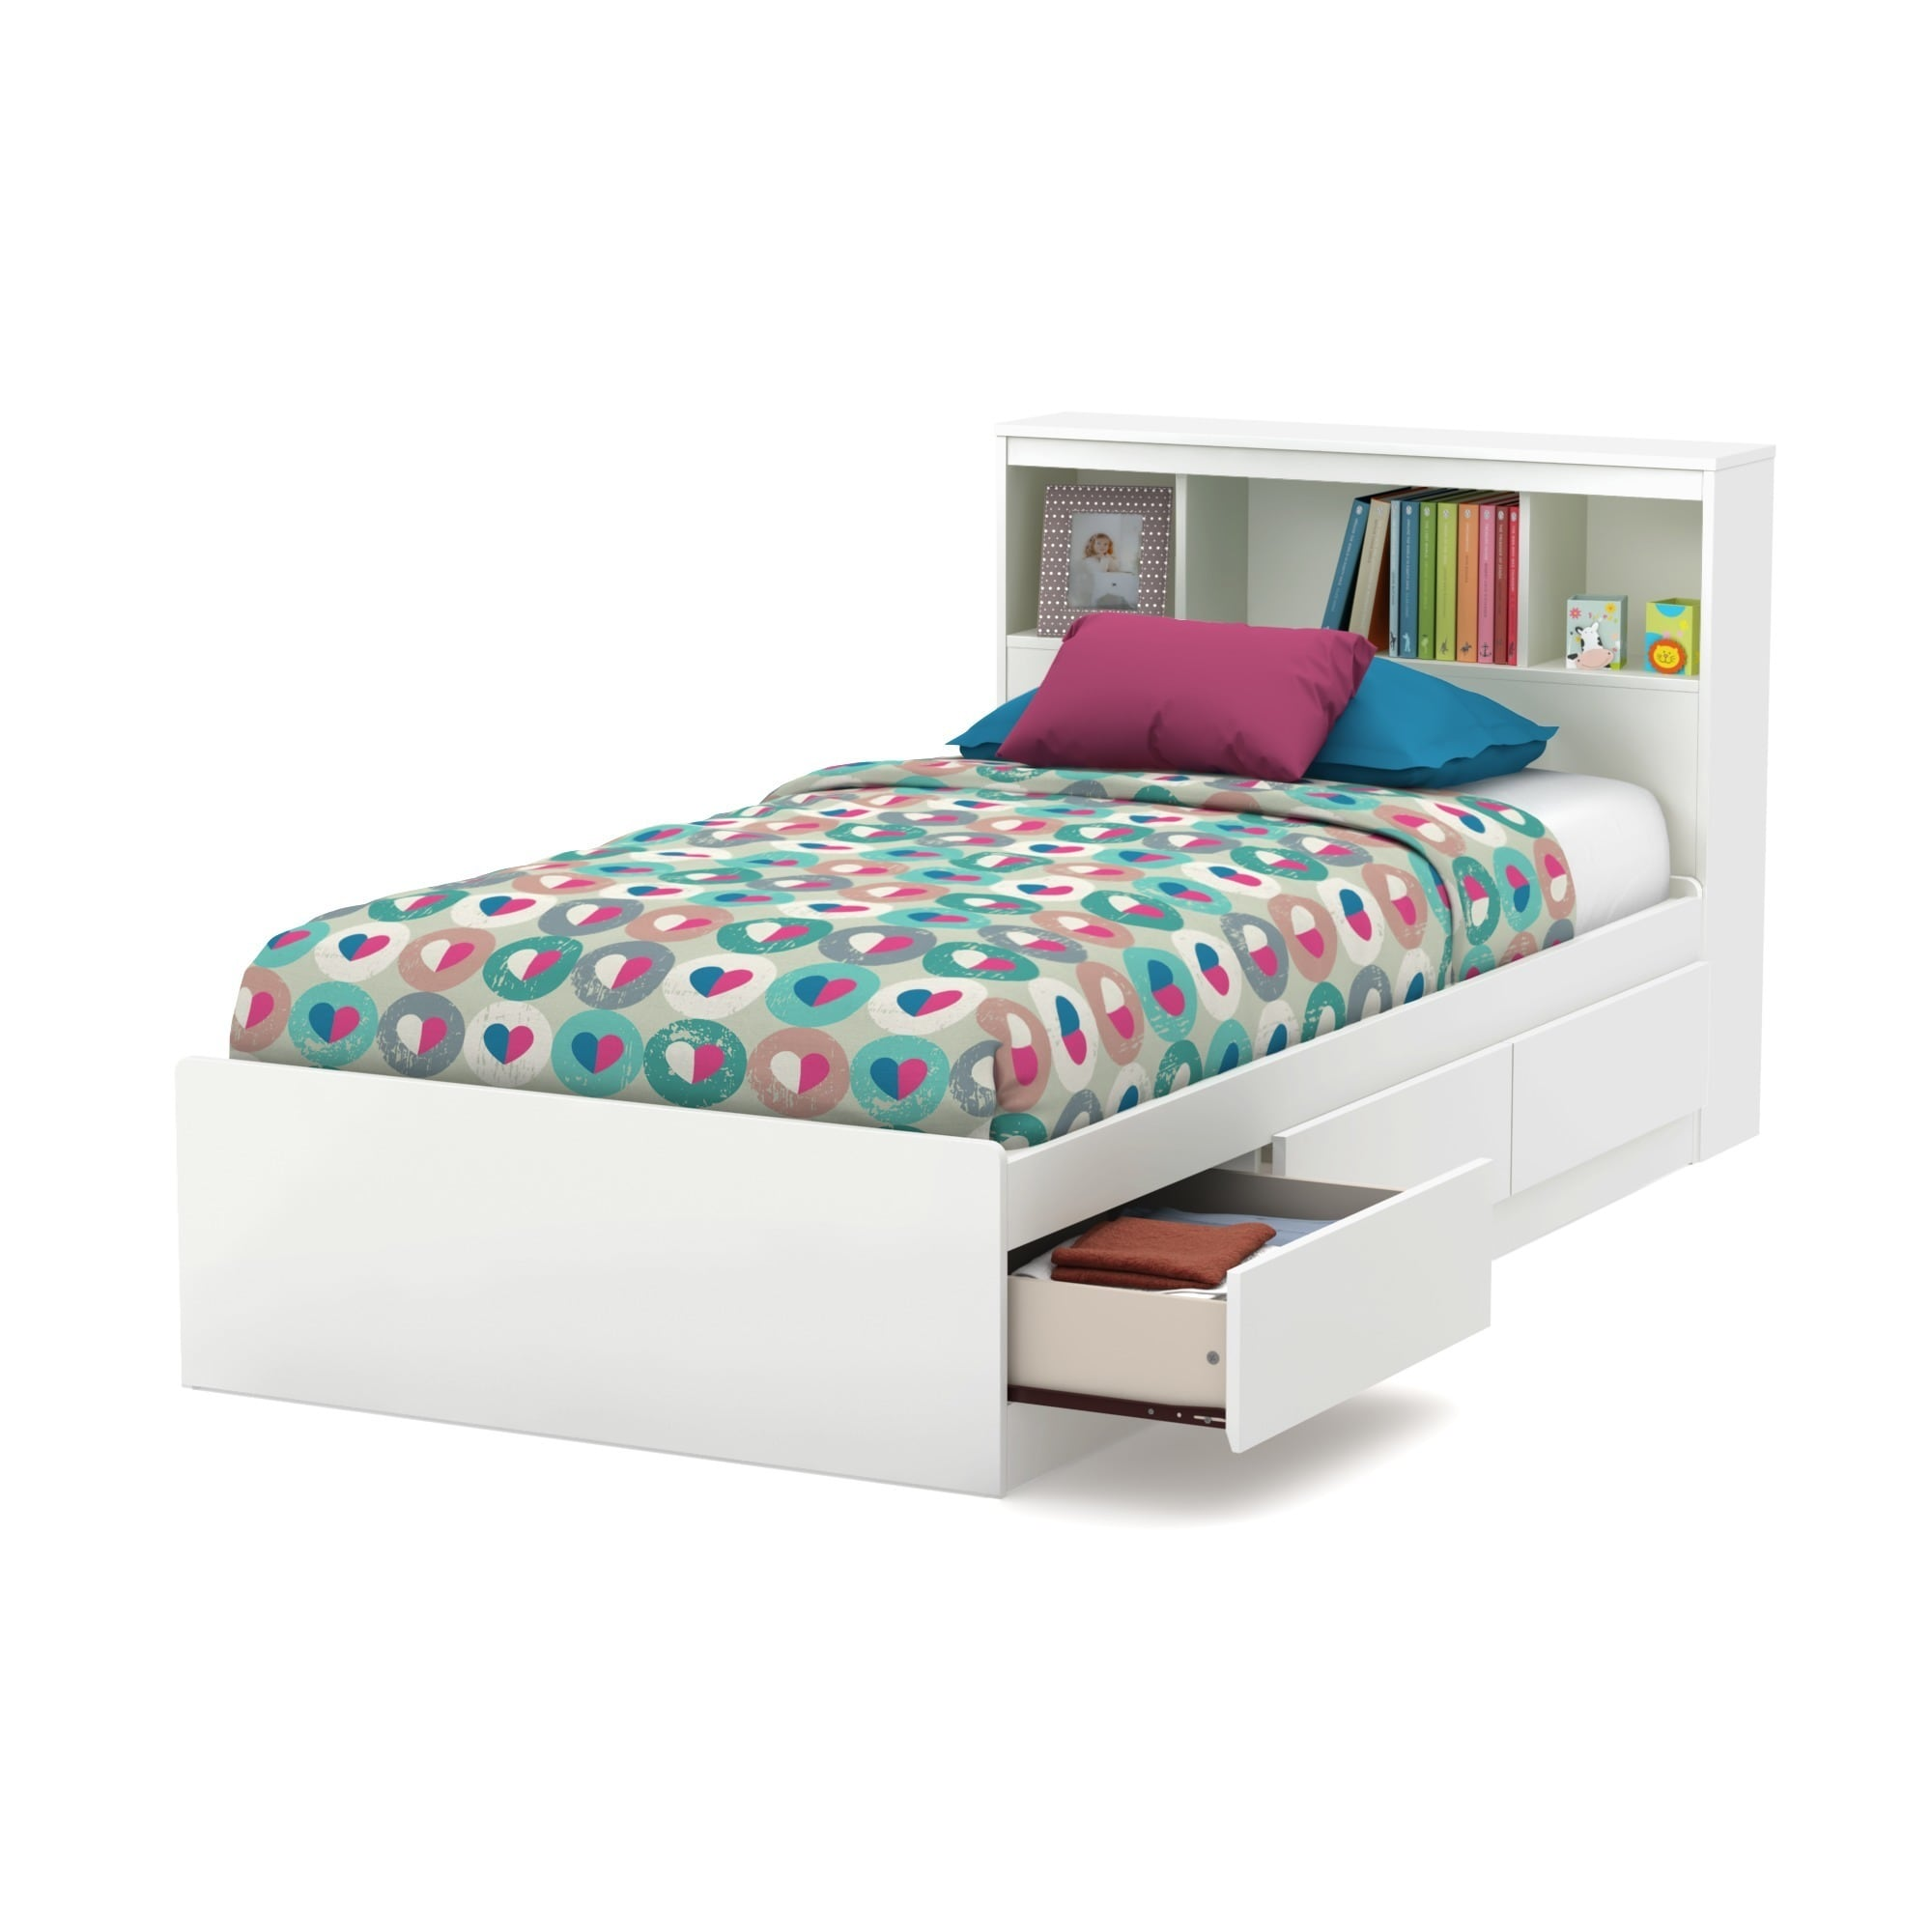 bookcase home pc zayley league amazing storage headboard fun lounge single frame com daybed ideas white of doors with full twin drawers bedhead ivy size platform trundle and tall improvement bobsrugby headboards side bookshelf queen bed russellbain beds